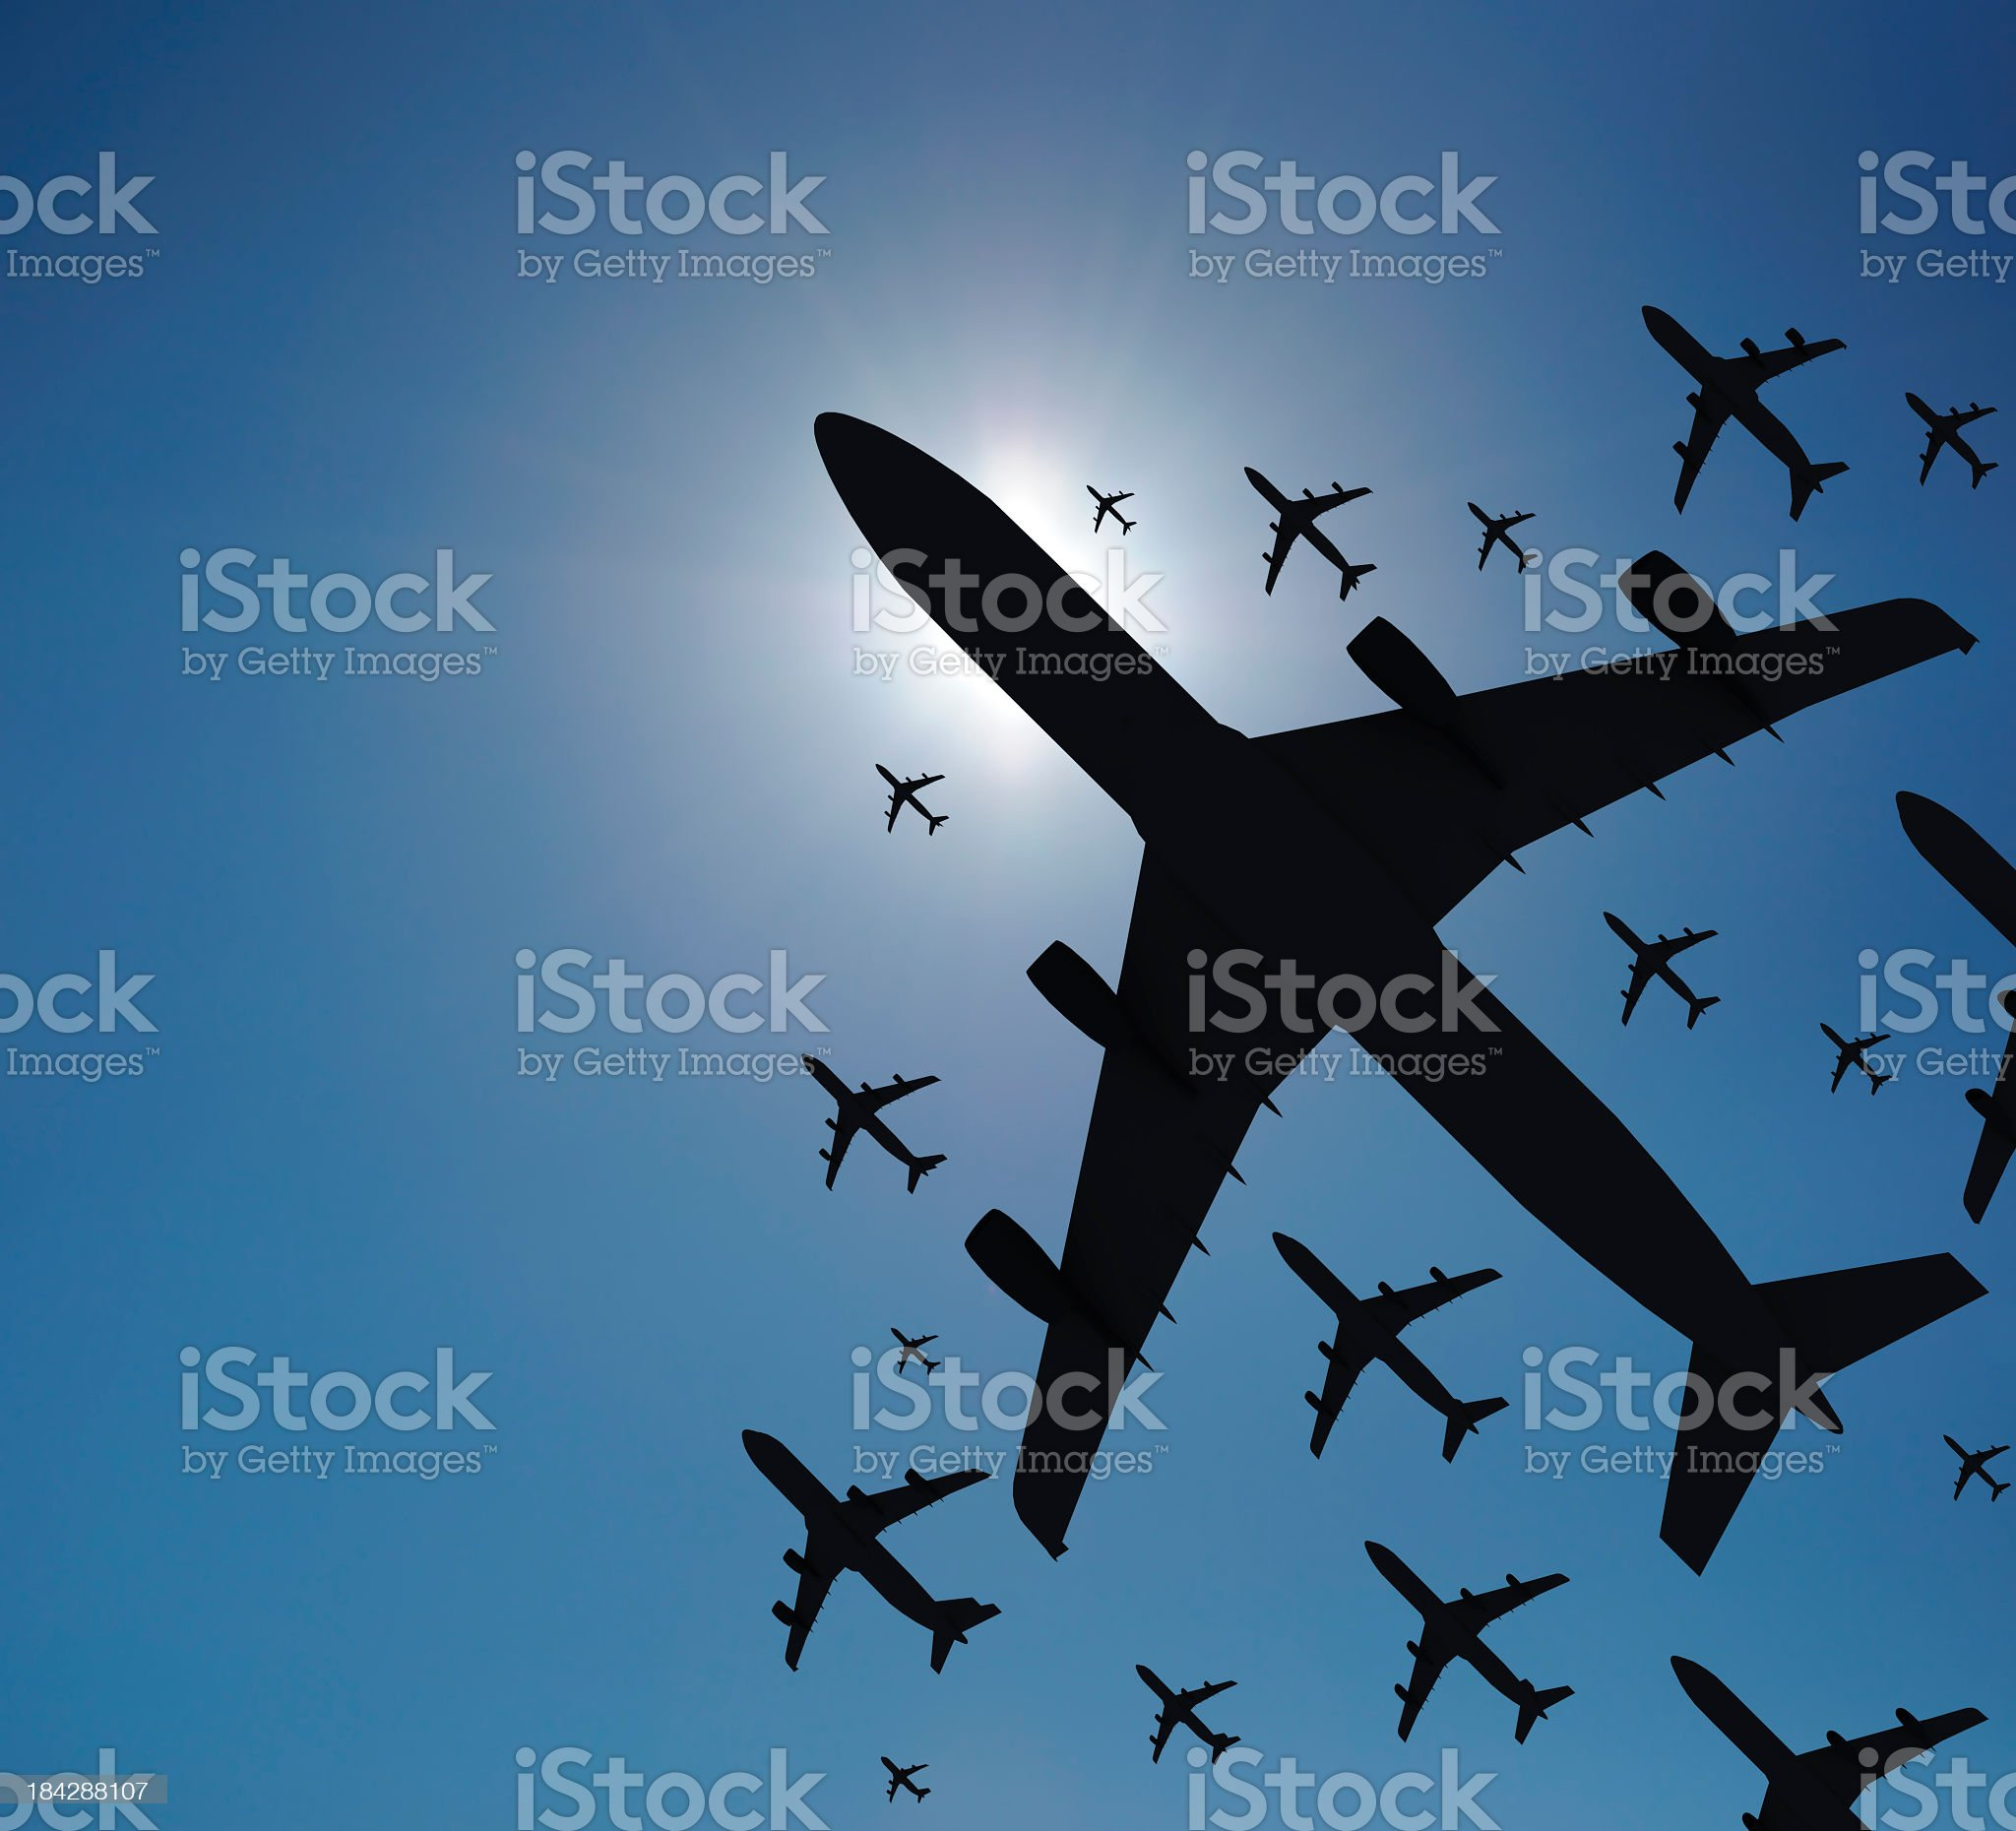 Varying sizes of airplane silhouettes set against a blue sky royalty-free stock photo